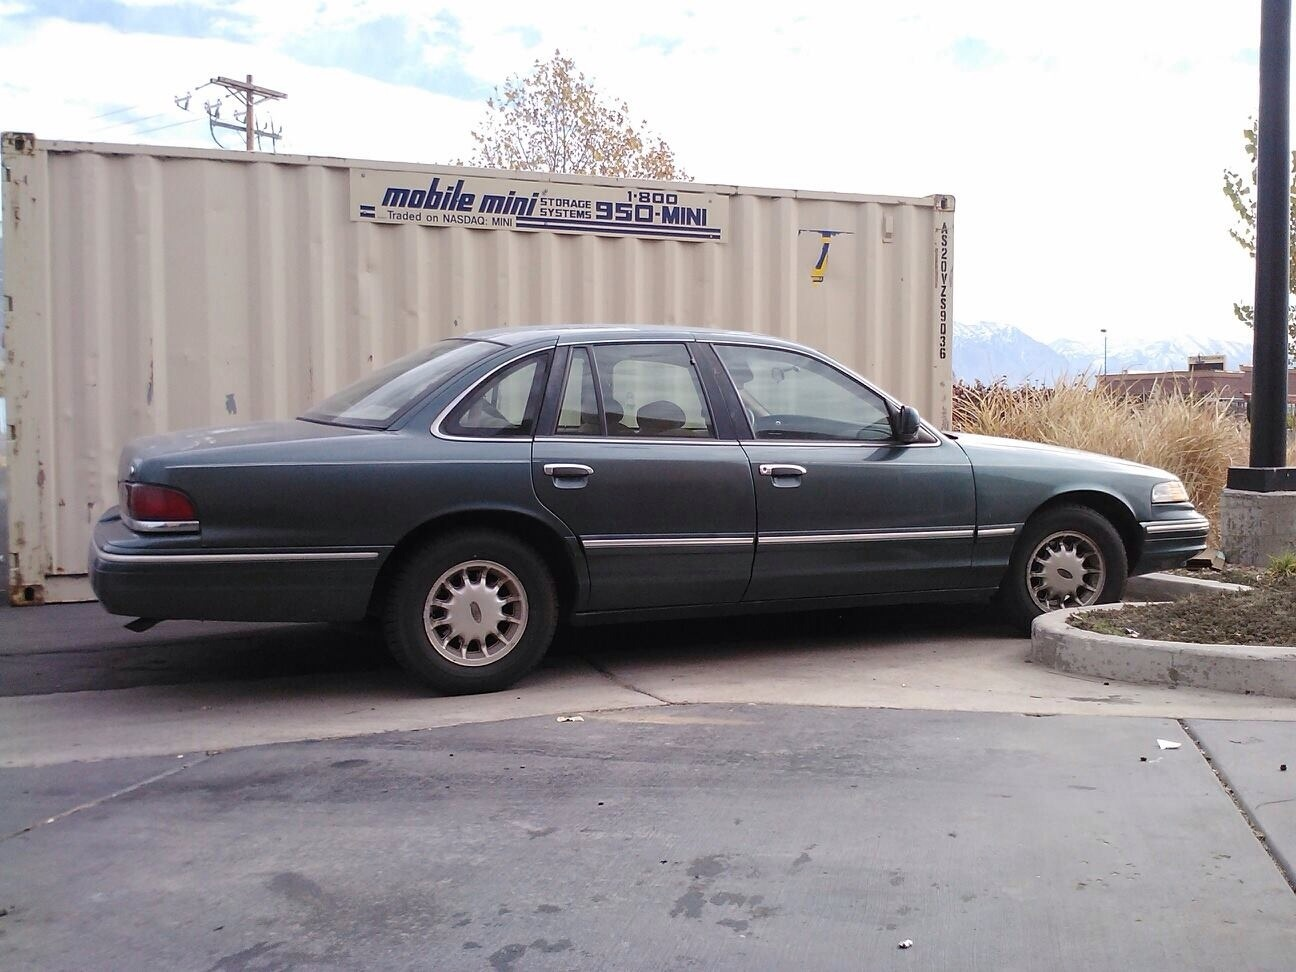 Ford Crown Victoria Questions How Many Miles Before Breakdown 1995 I Have Changed Oil Every 5000 Always Used Conventional 10w30 On Original Transmission Only Problem Is Worn Out Door Hinges